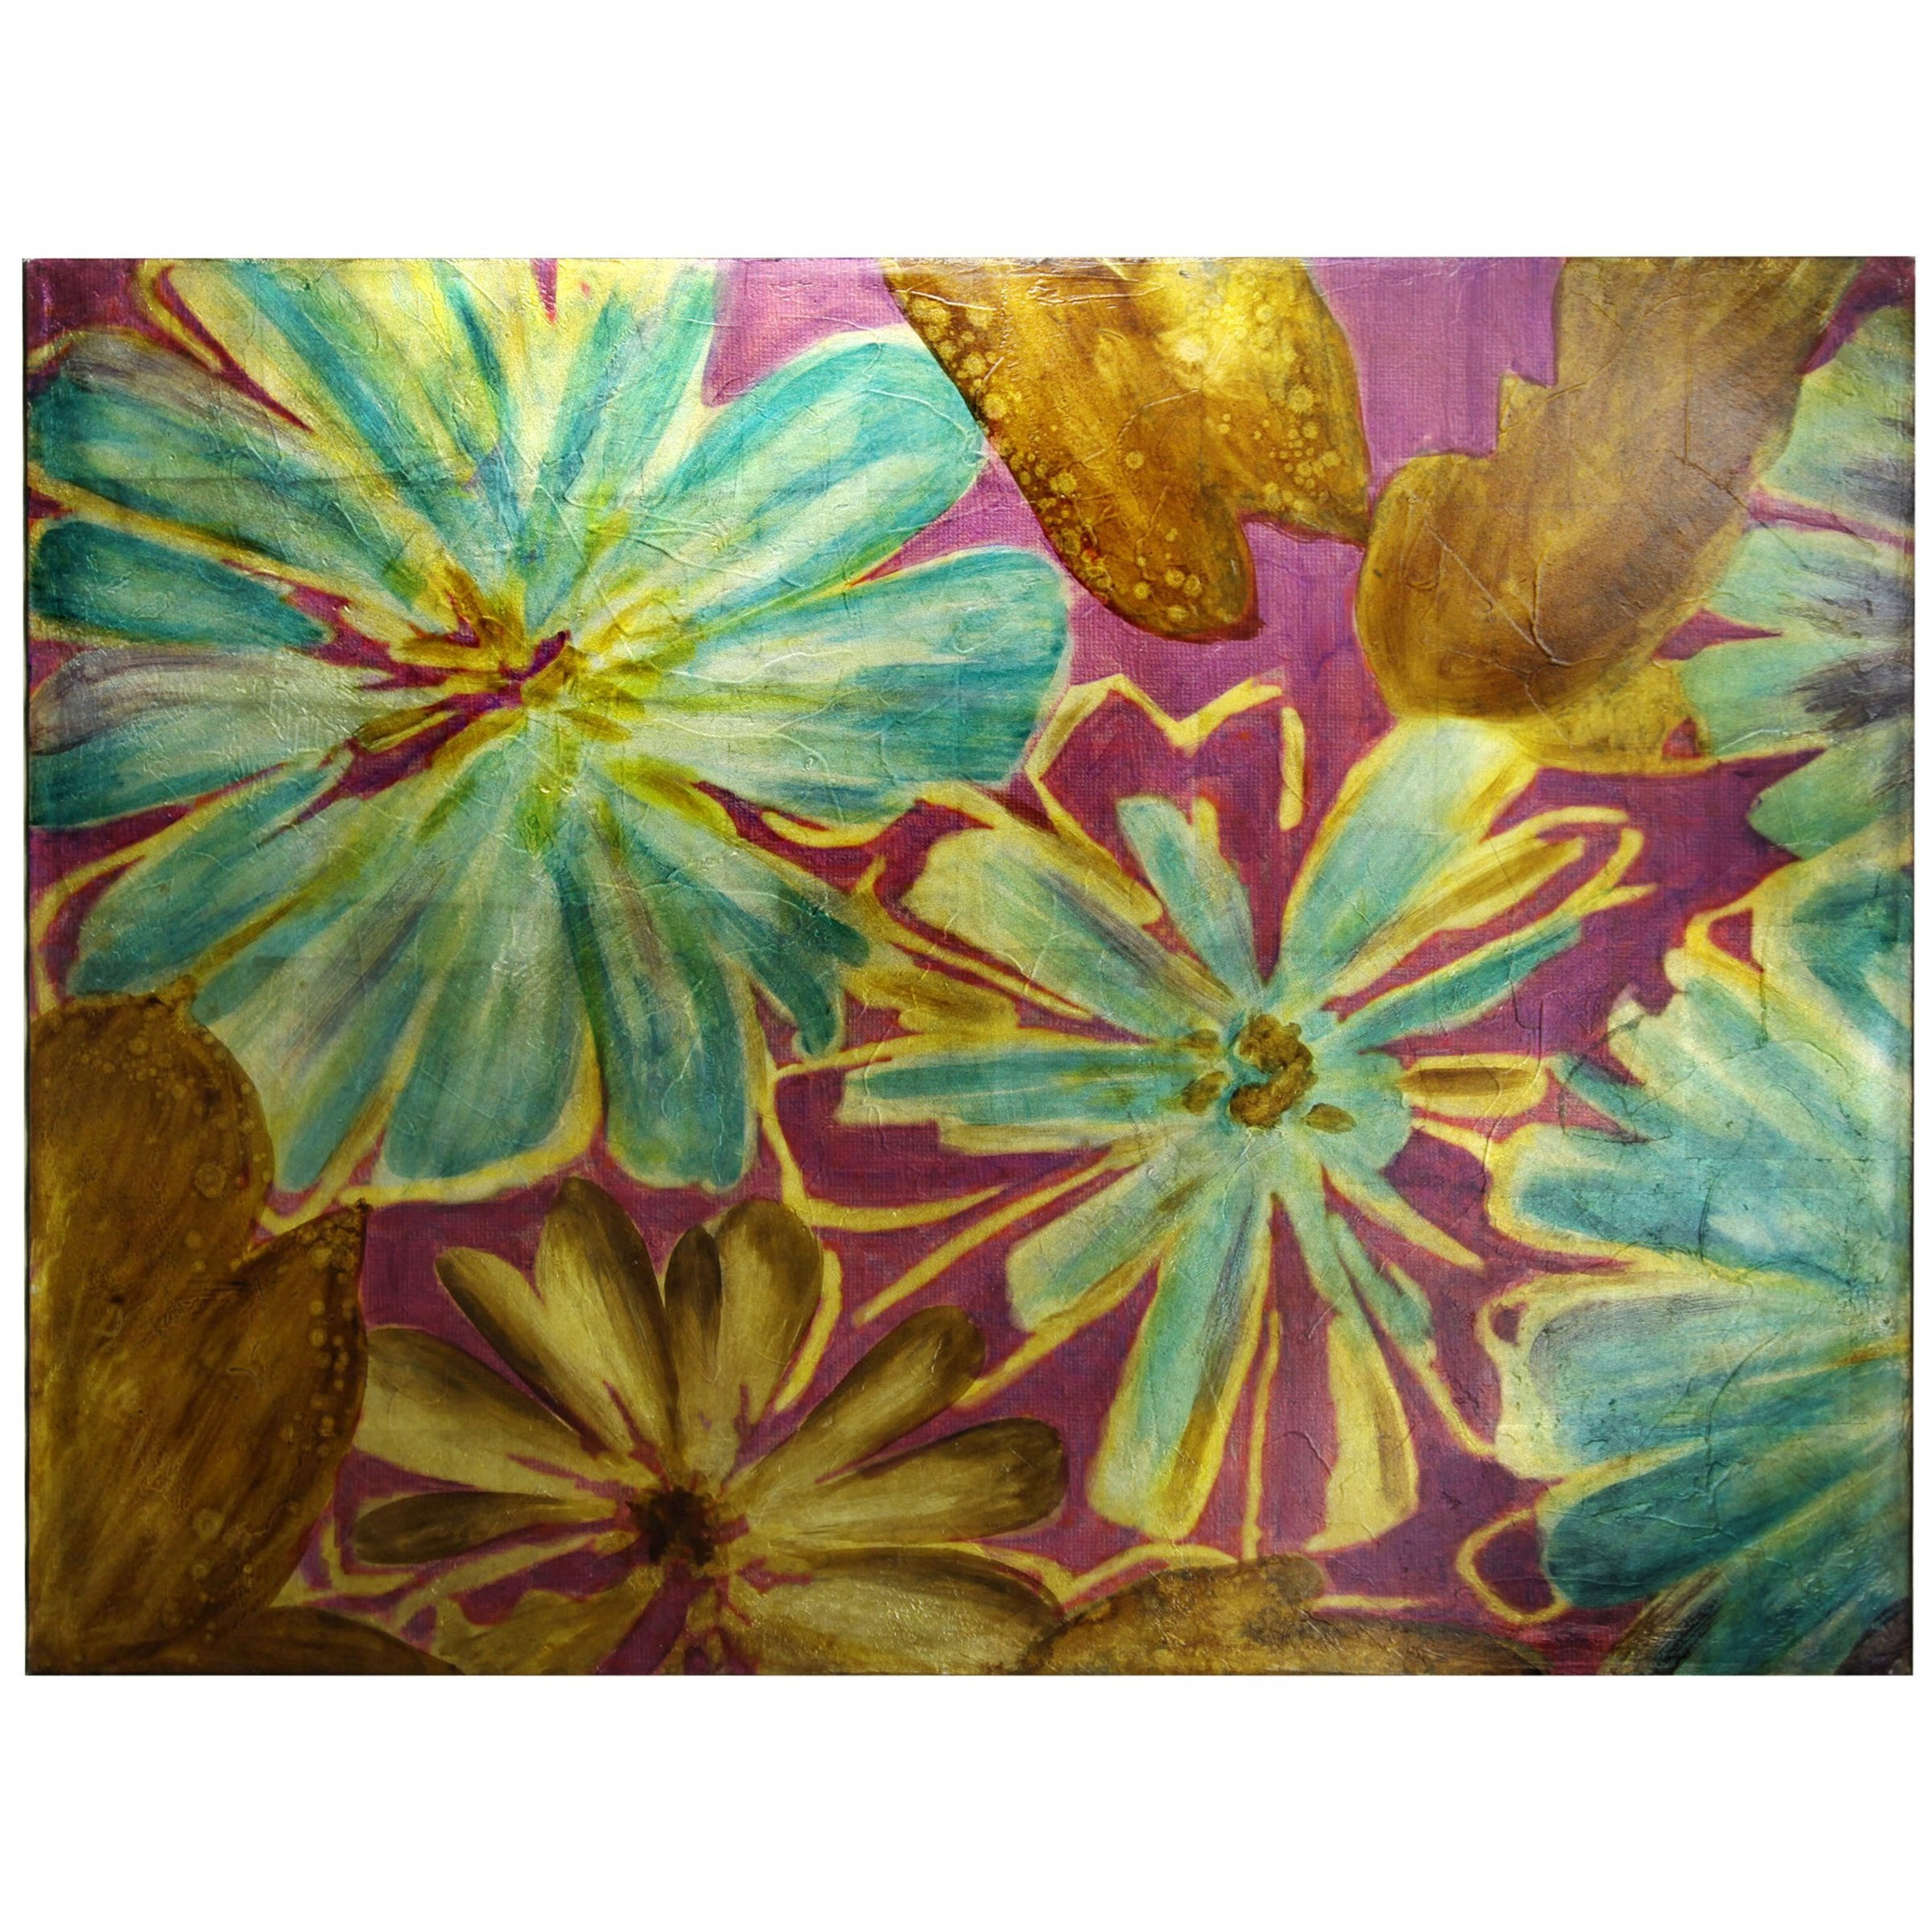 Wall Décor Hand Painted Canvas by StyleCraft at Alison Craig Home Furnishings